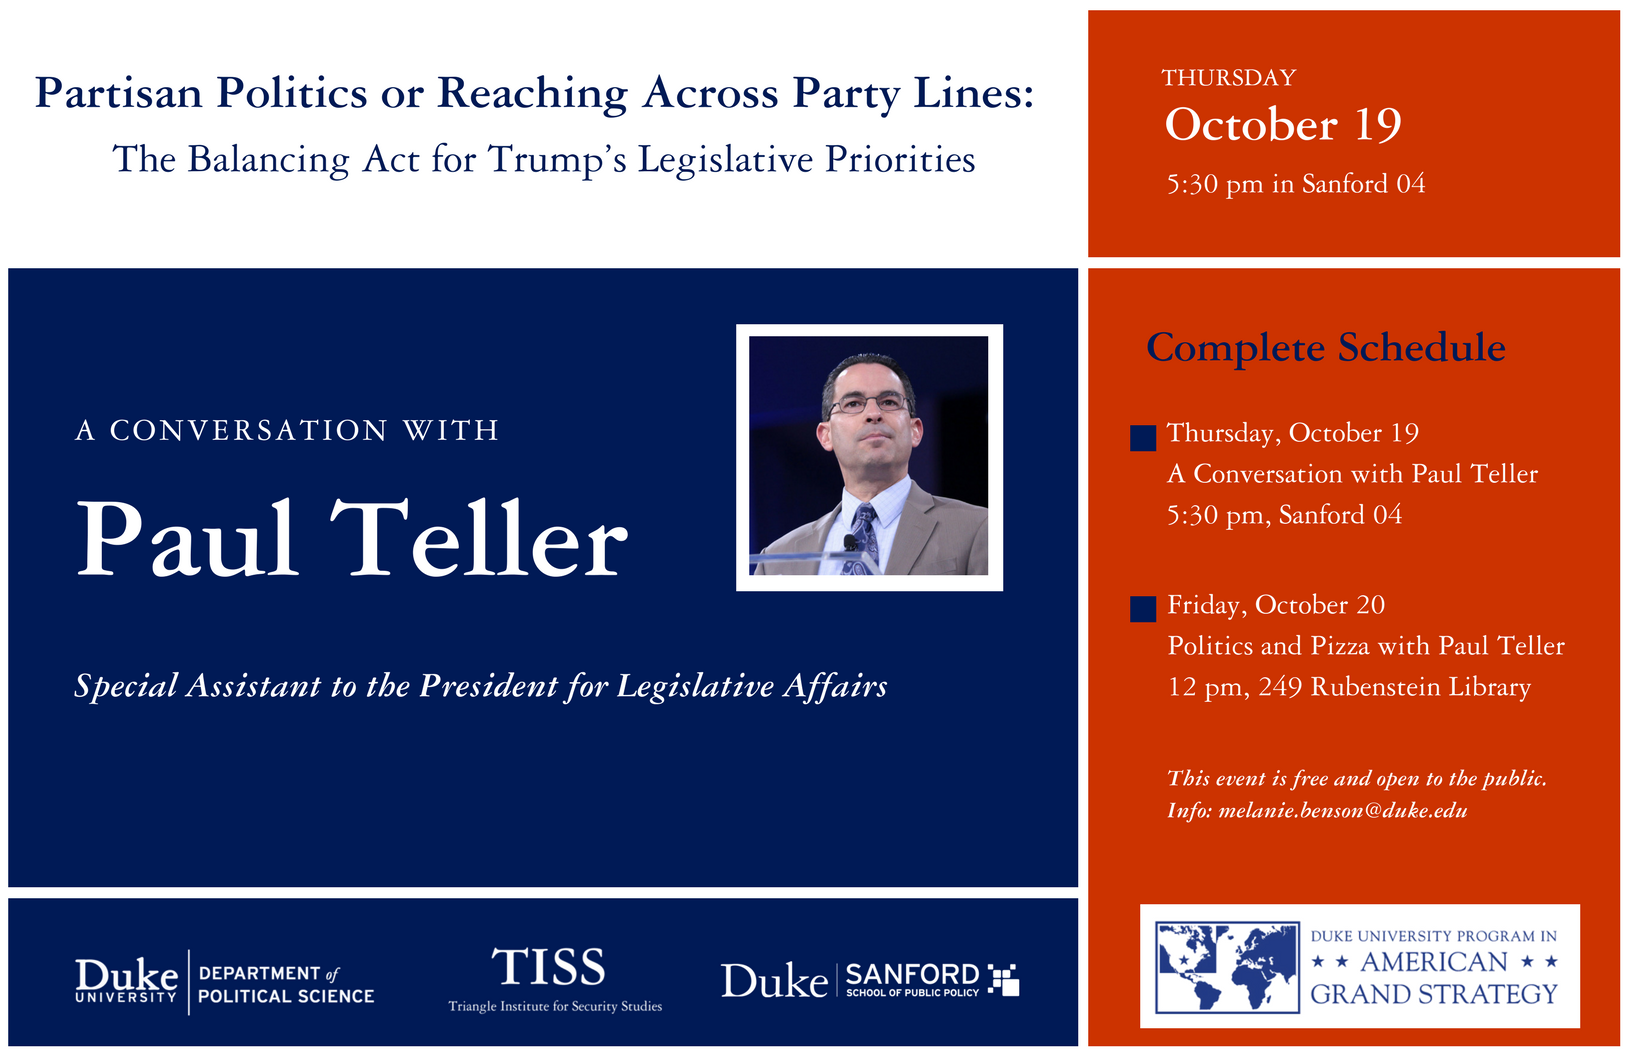 Partisan Politics or Reaching Across Party Lines - the Balancing Act for Trump's Legislative Priorities: A Conversation with Paul Teller @ Sanford School 04 | Durham | North Carolina | United States